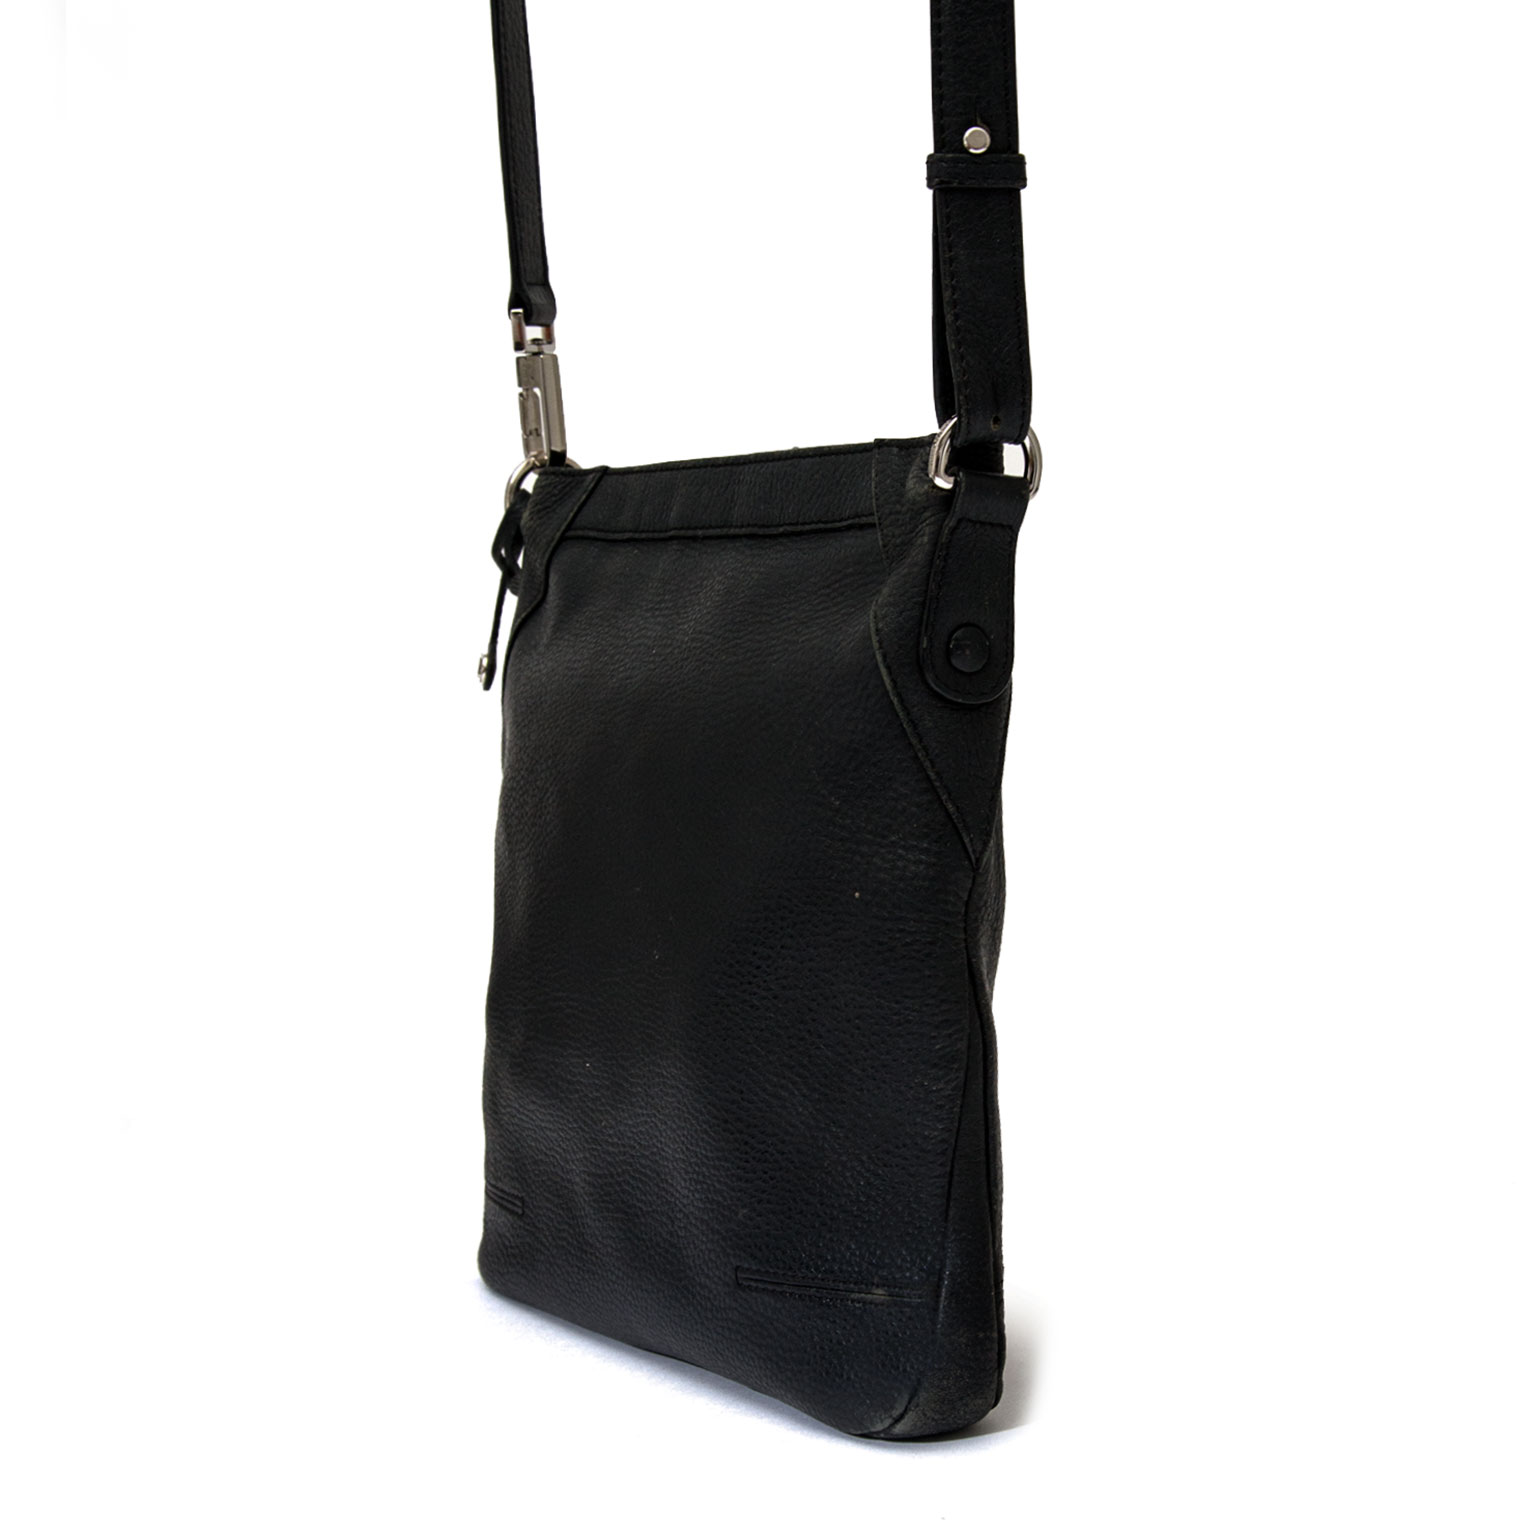 Our Belgian Designers designed this classic model by Delvaux. This cross body  bag has a zip closure and adjustable shoulder straps. The interior is simply in black. Beauty in his simplicity, Audrey Hepburn would know what do.